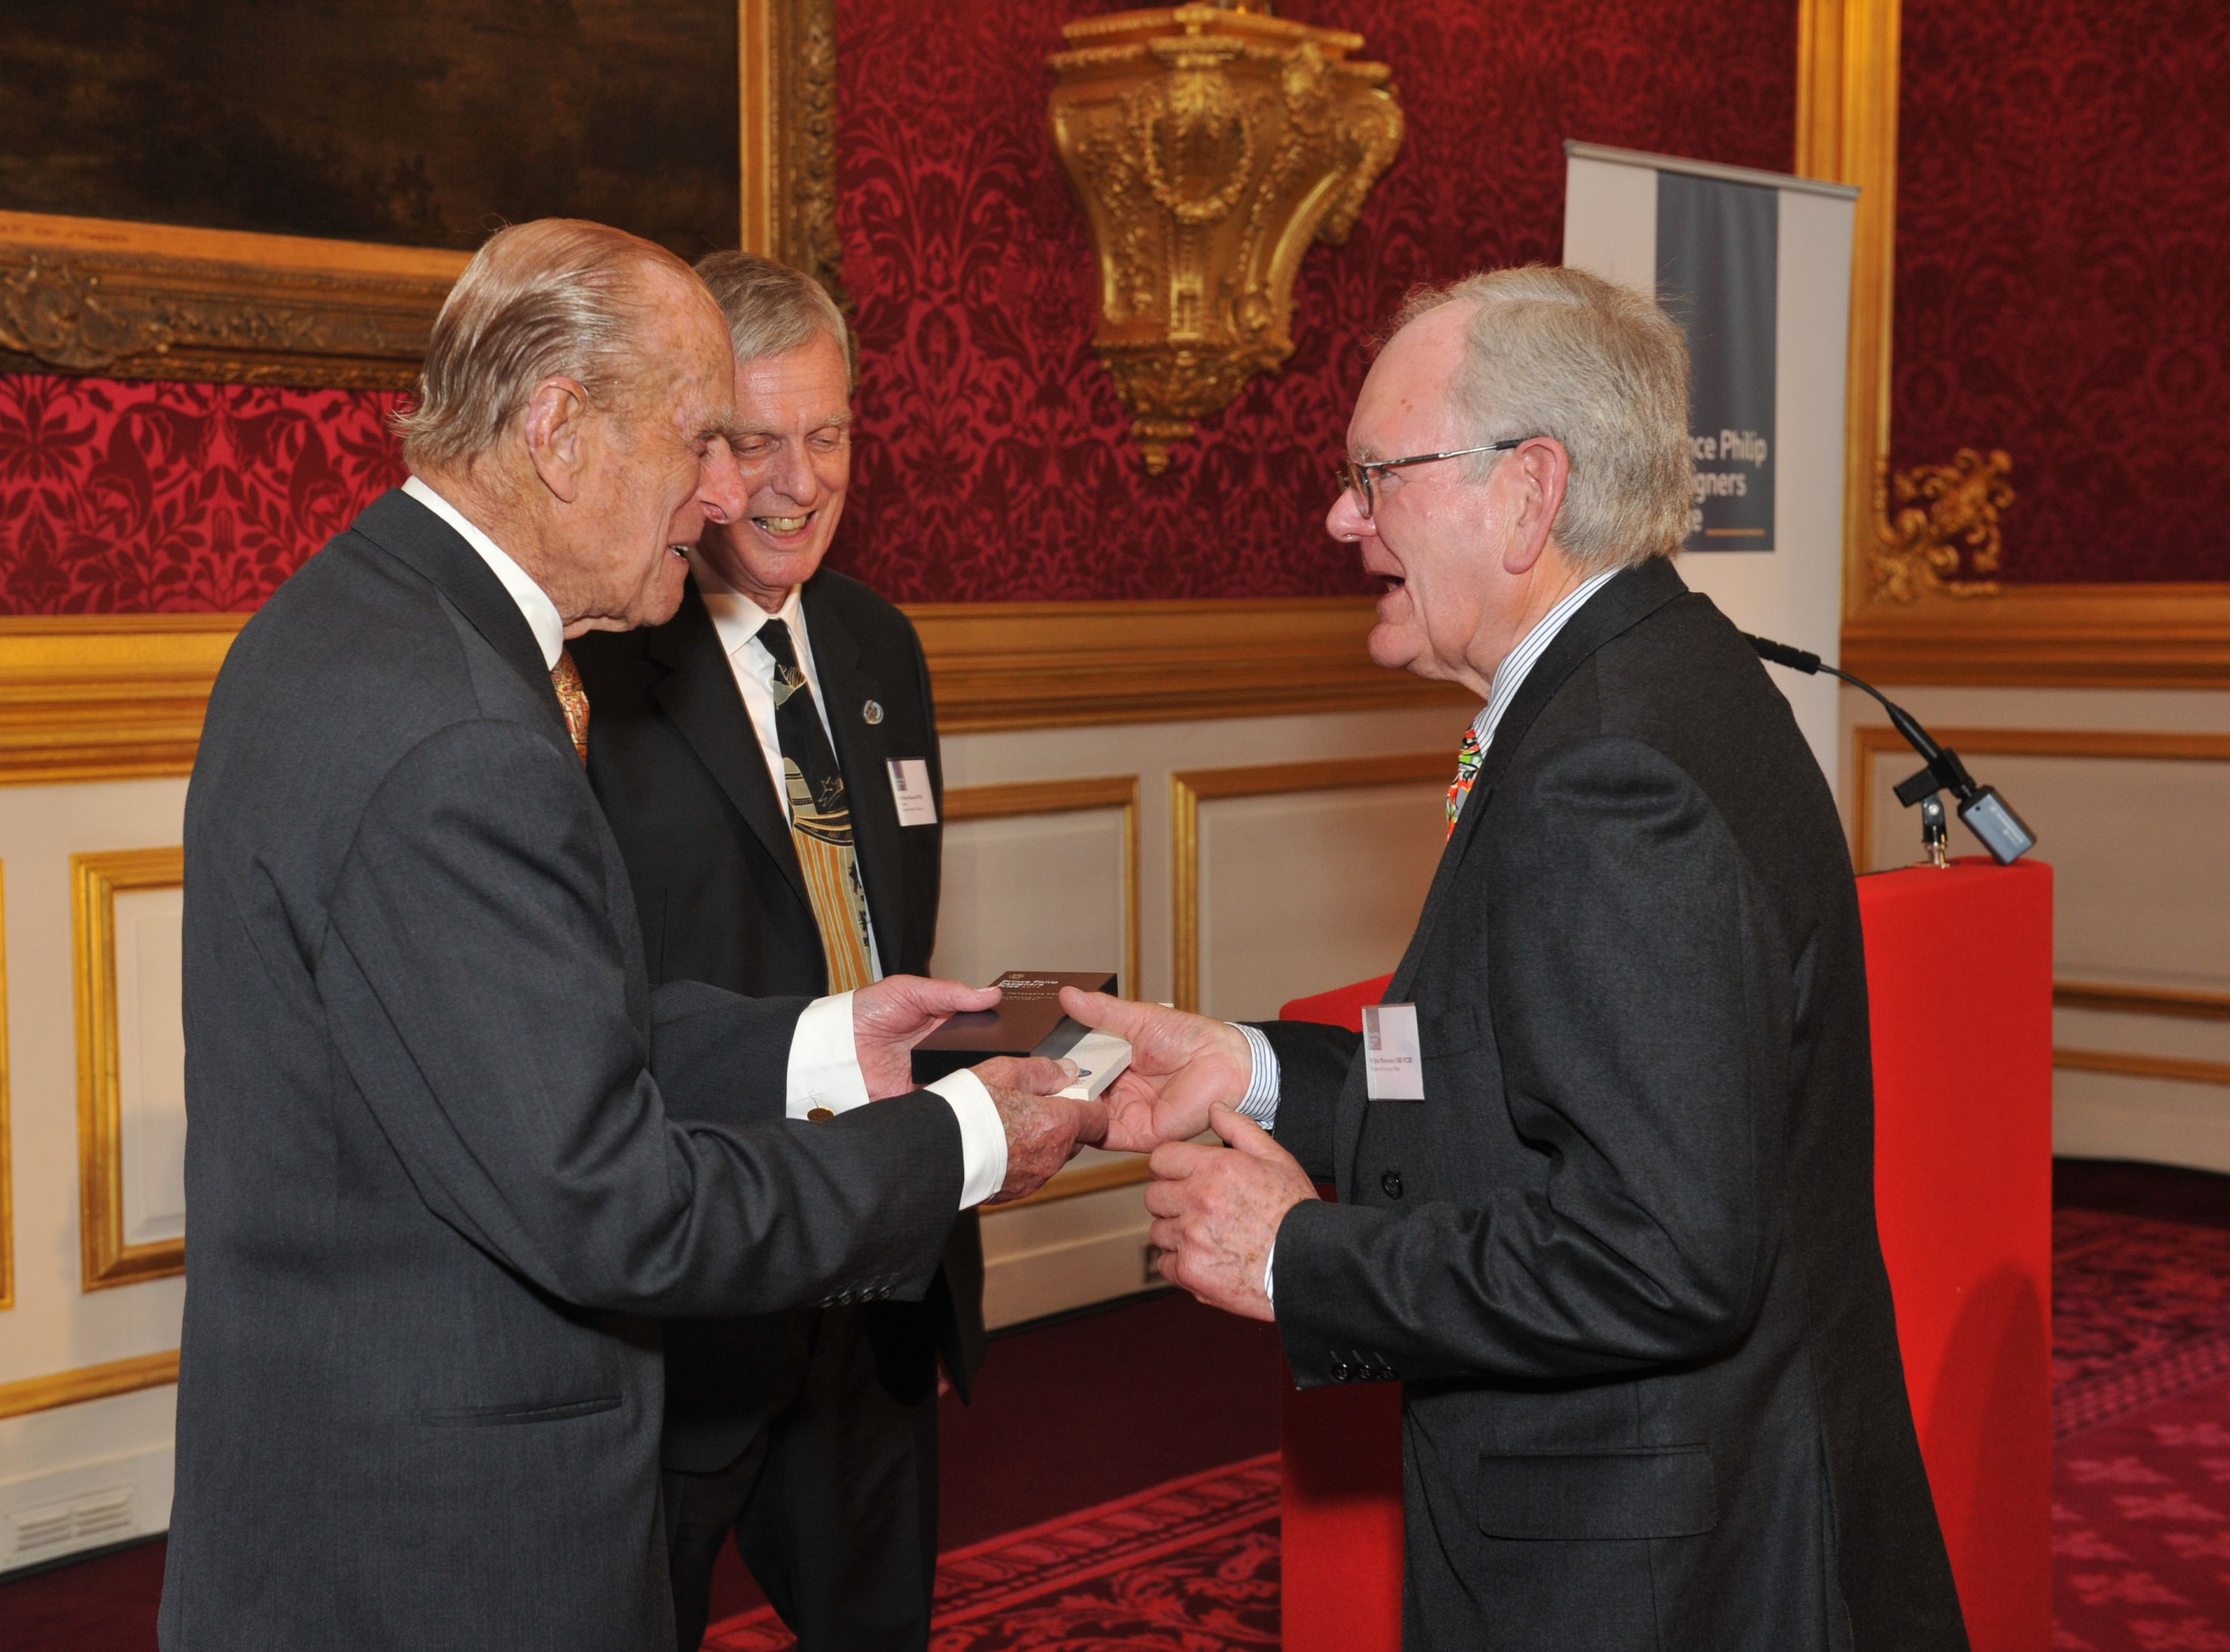 HRH Prince Philip presenting the award